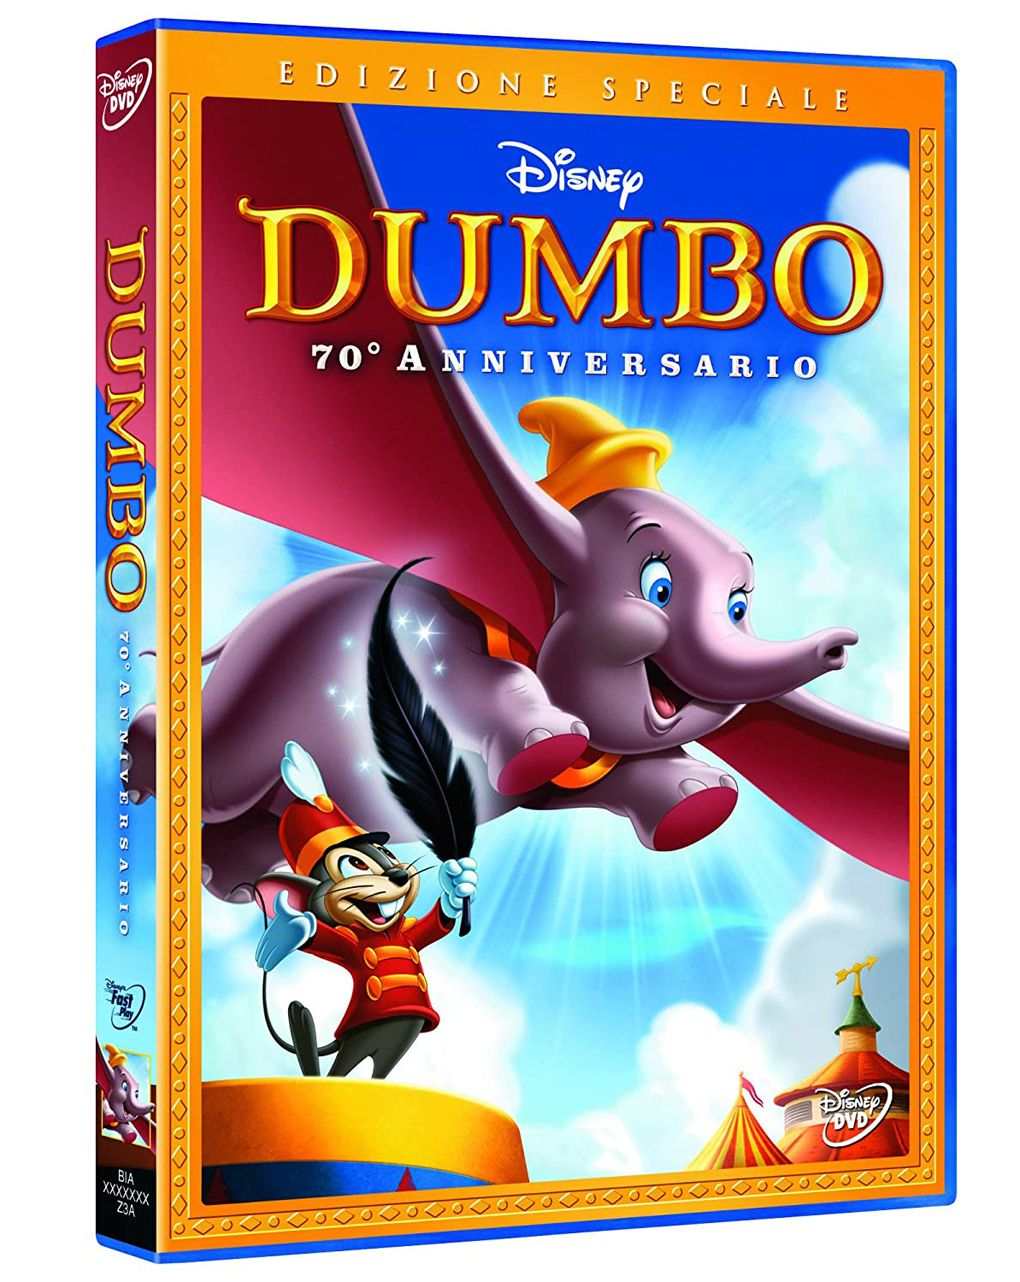 Dvd dumbo - Disney